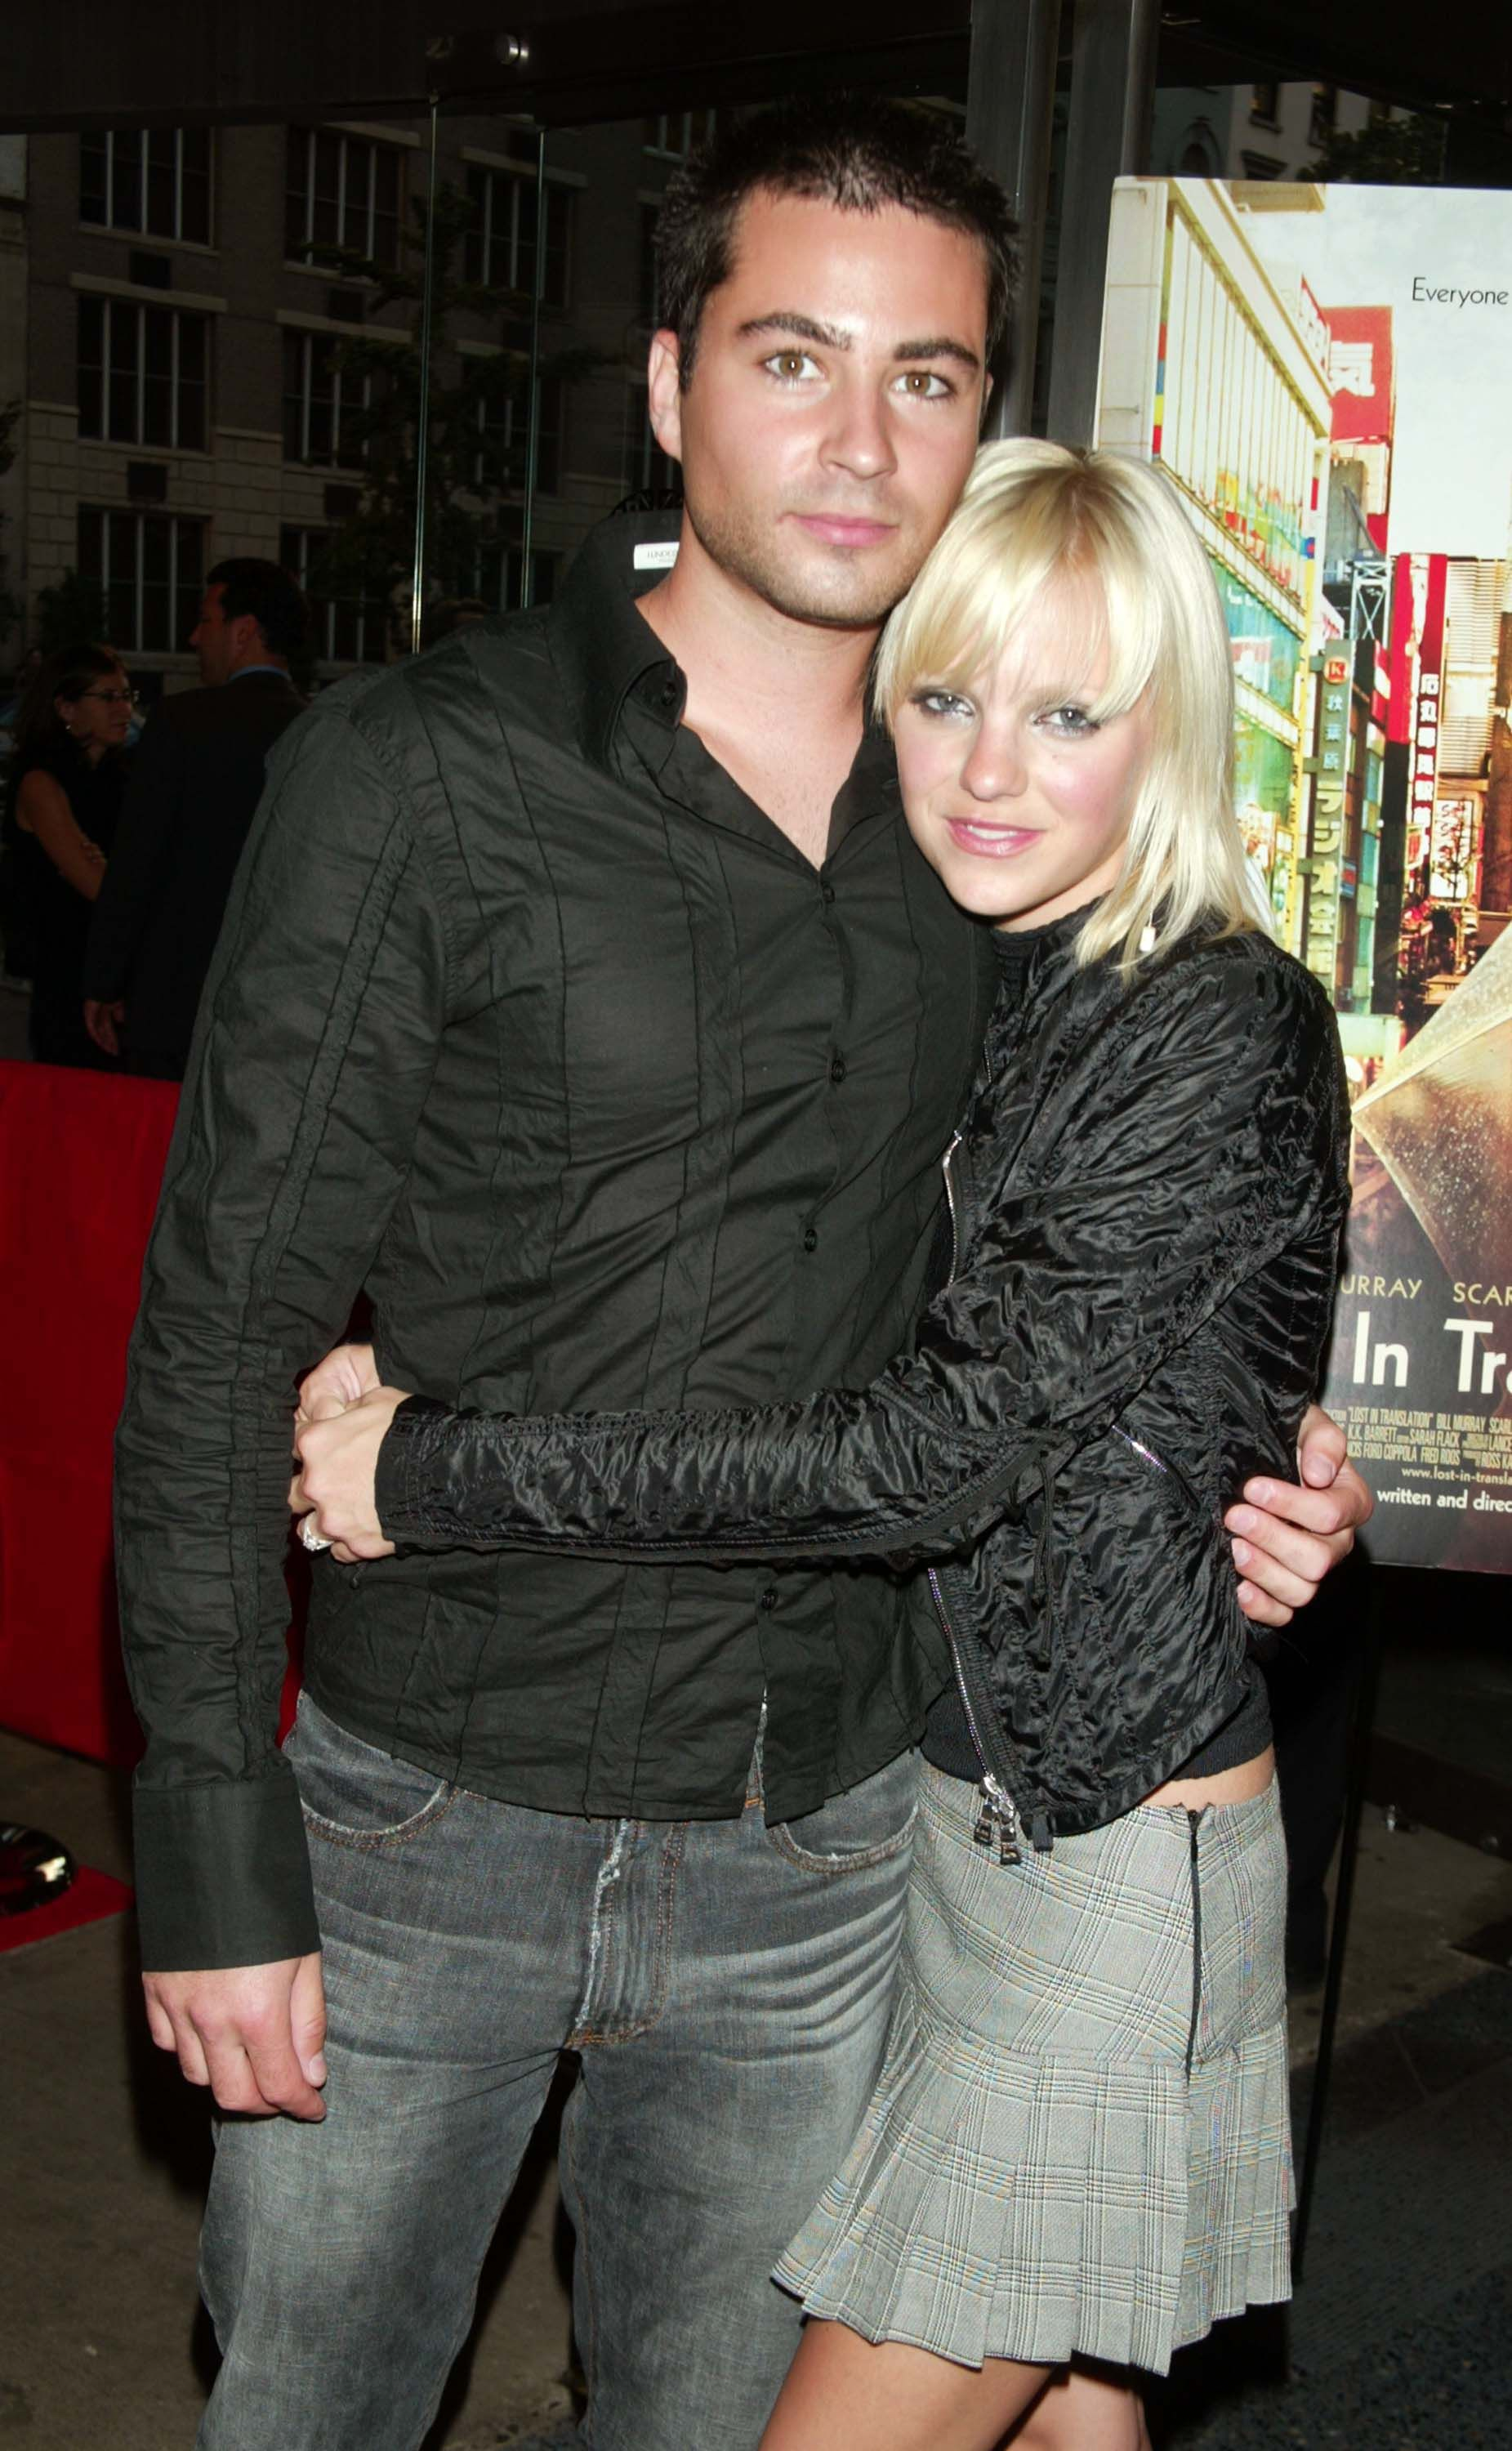 Who is anna faris dating now